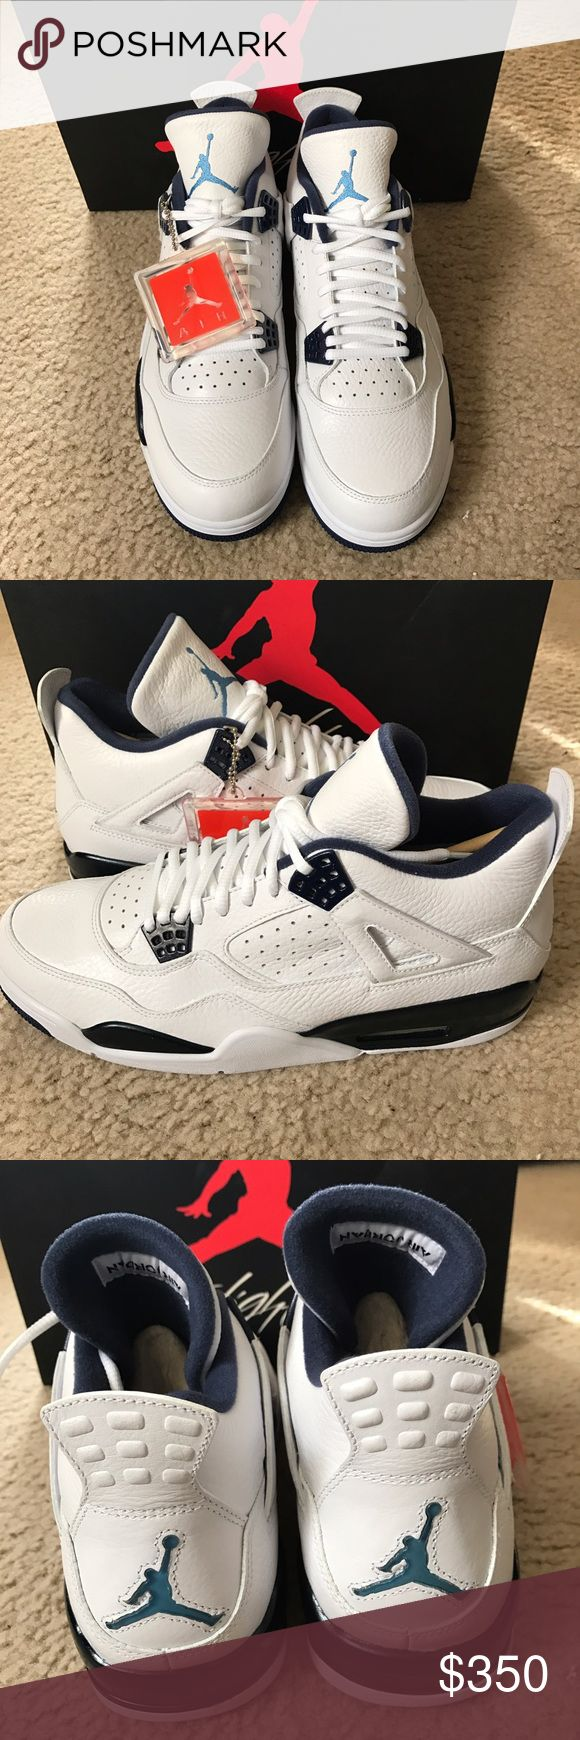 Nike Air Jordan Retro 4 Legend Blue White Size 11 This item is brand new  Ds Mint condition Year: 2015 100% authentic  Guaranteed No trade Any other questions comment me Nike Shoes Sneakers